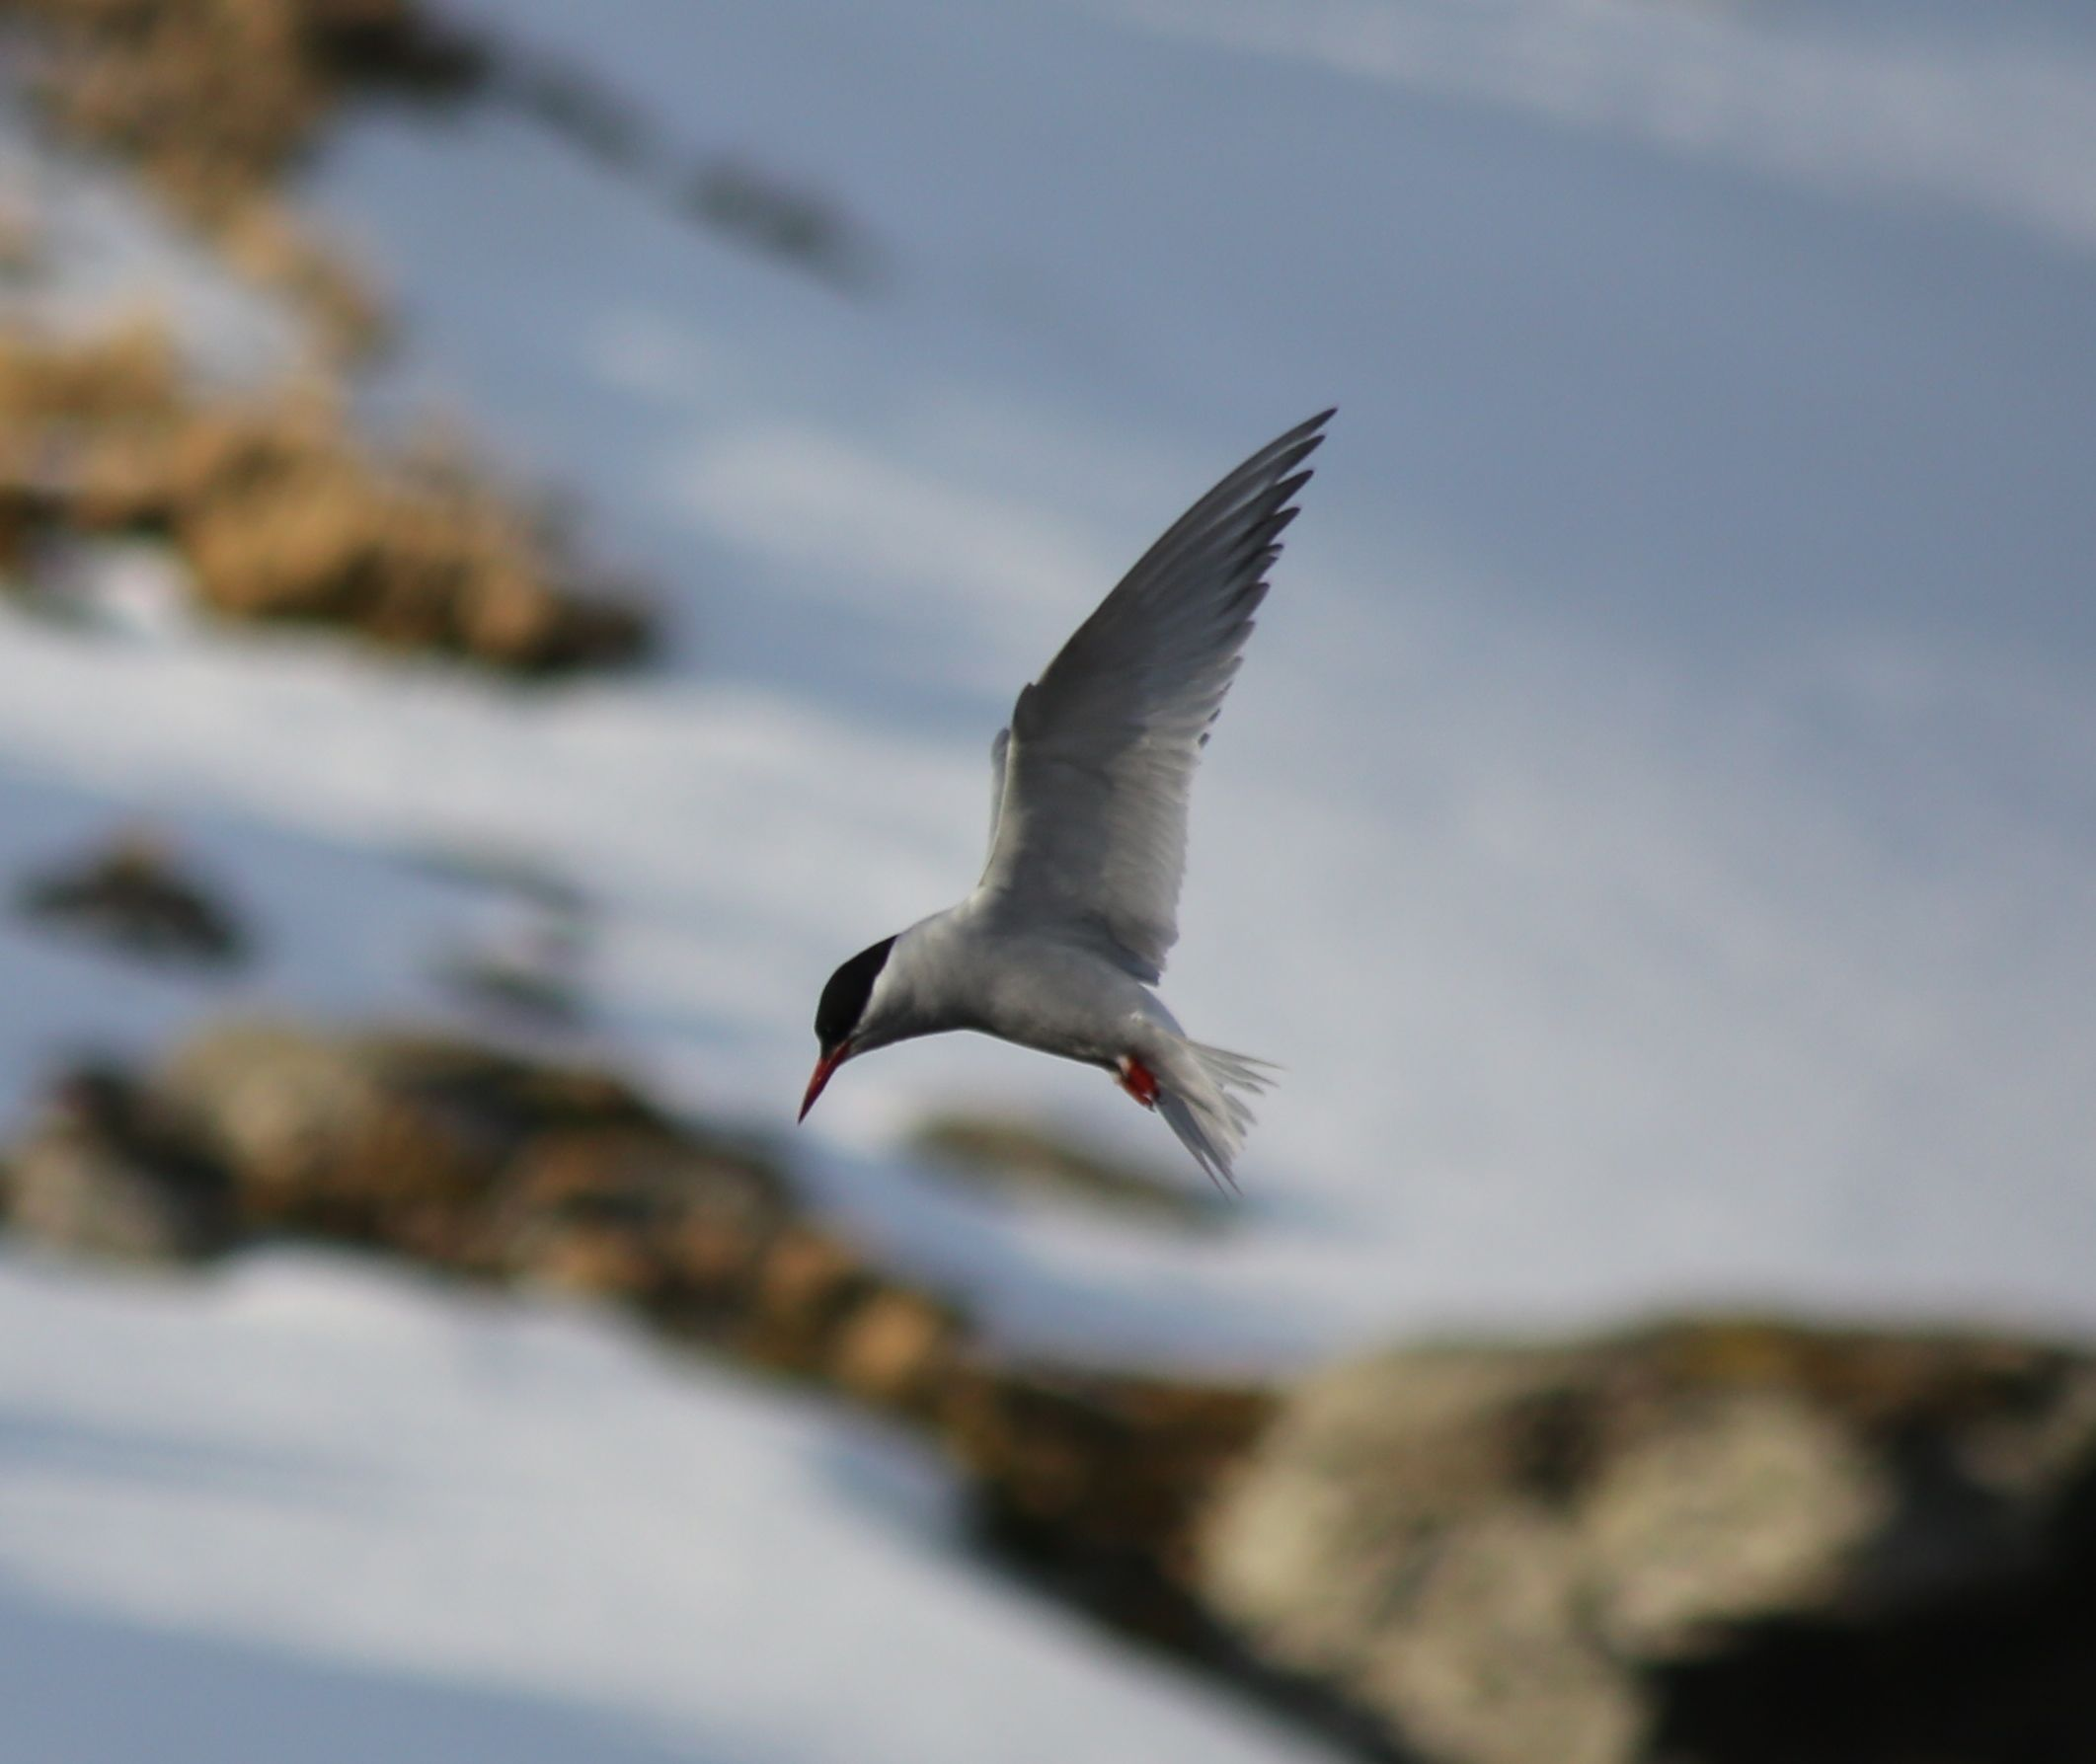 The terns hovered momentarily before diving to feed by the kettle pools.